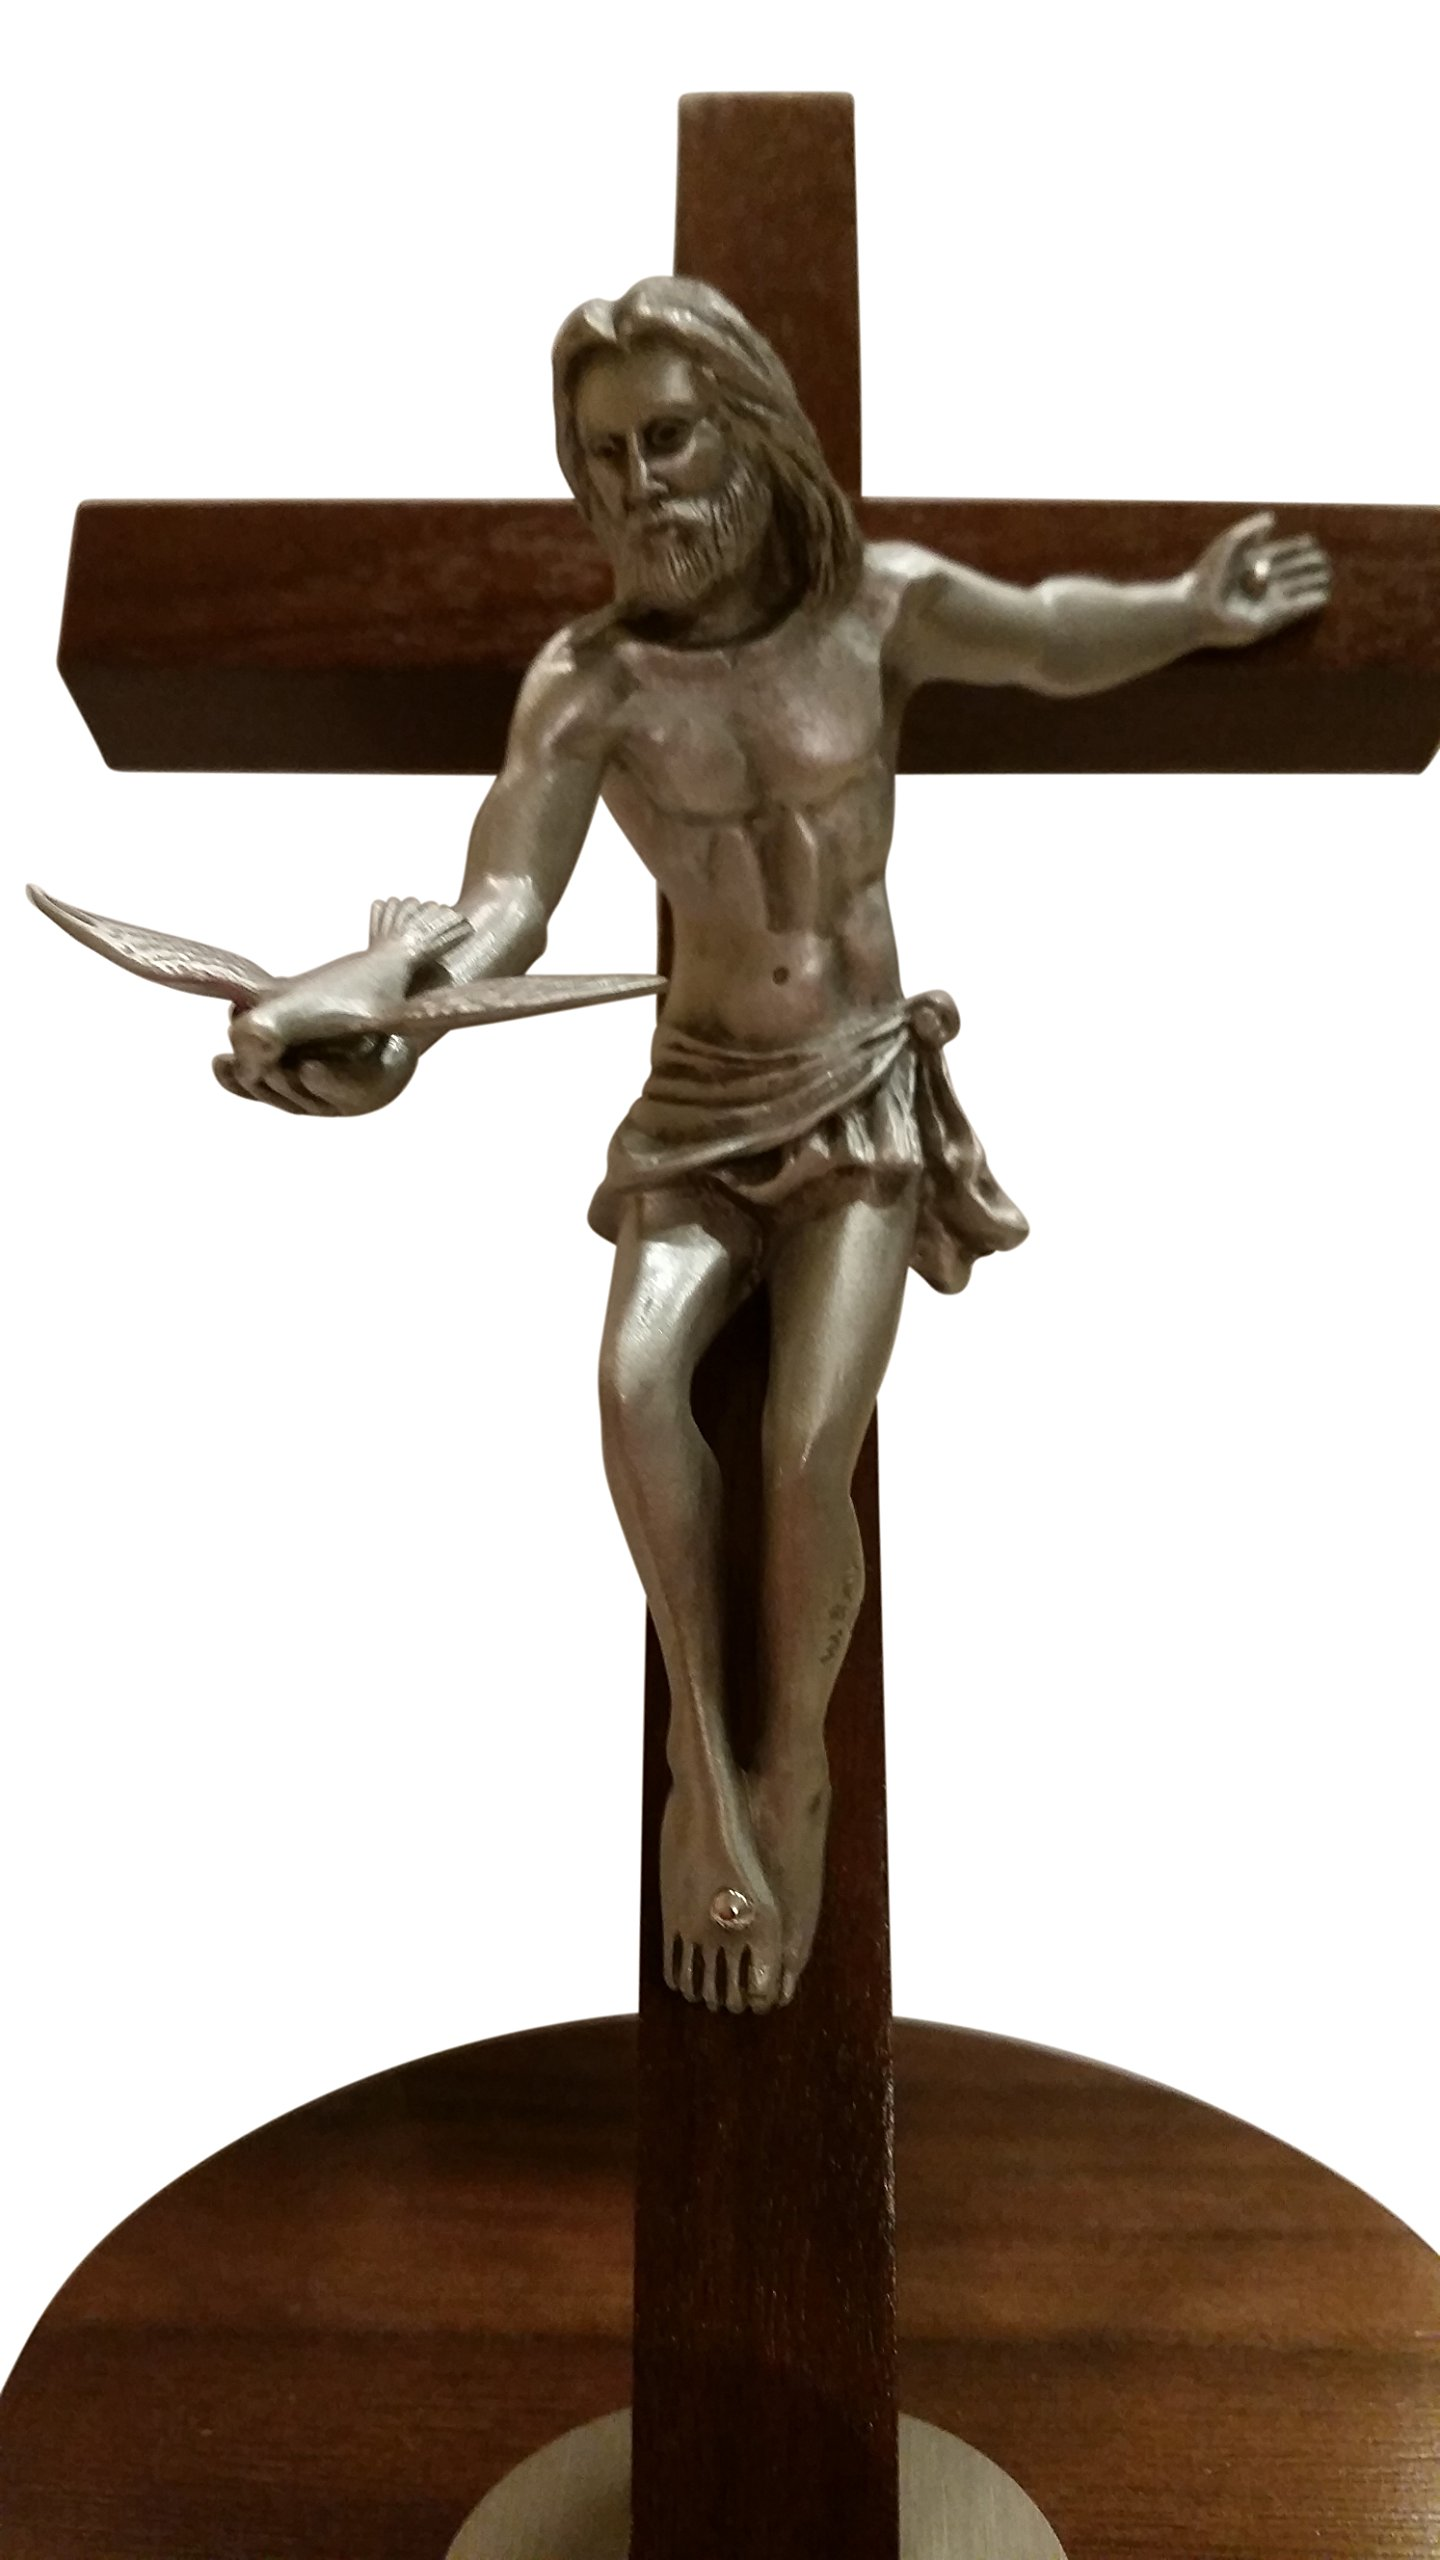 Inspire Nation Gift of the Spirit Walnut Wood Standing Wall Cross Crucifix with Removable Base for Hanging 8 inches by Inspire Nation (Image #8)